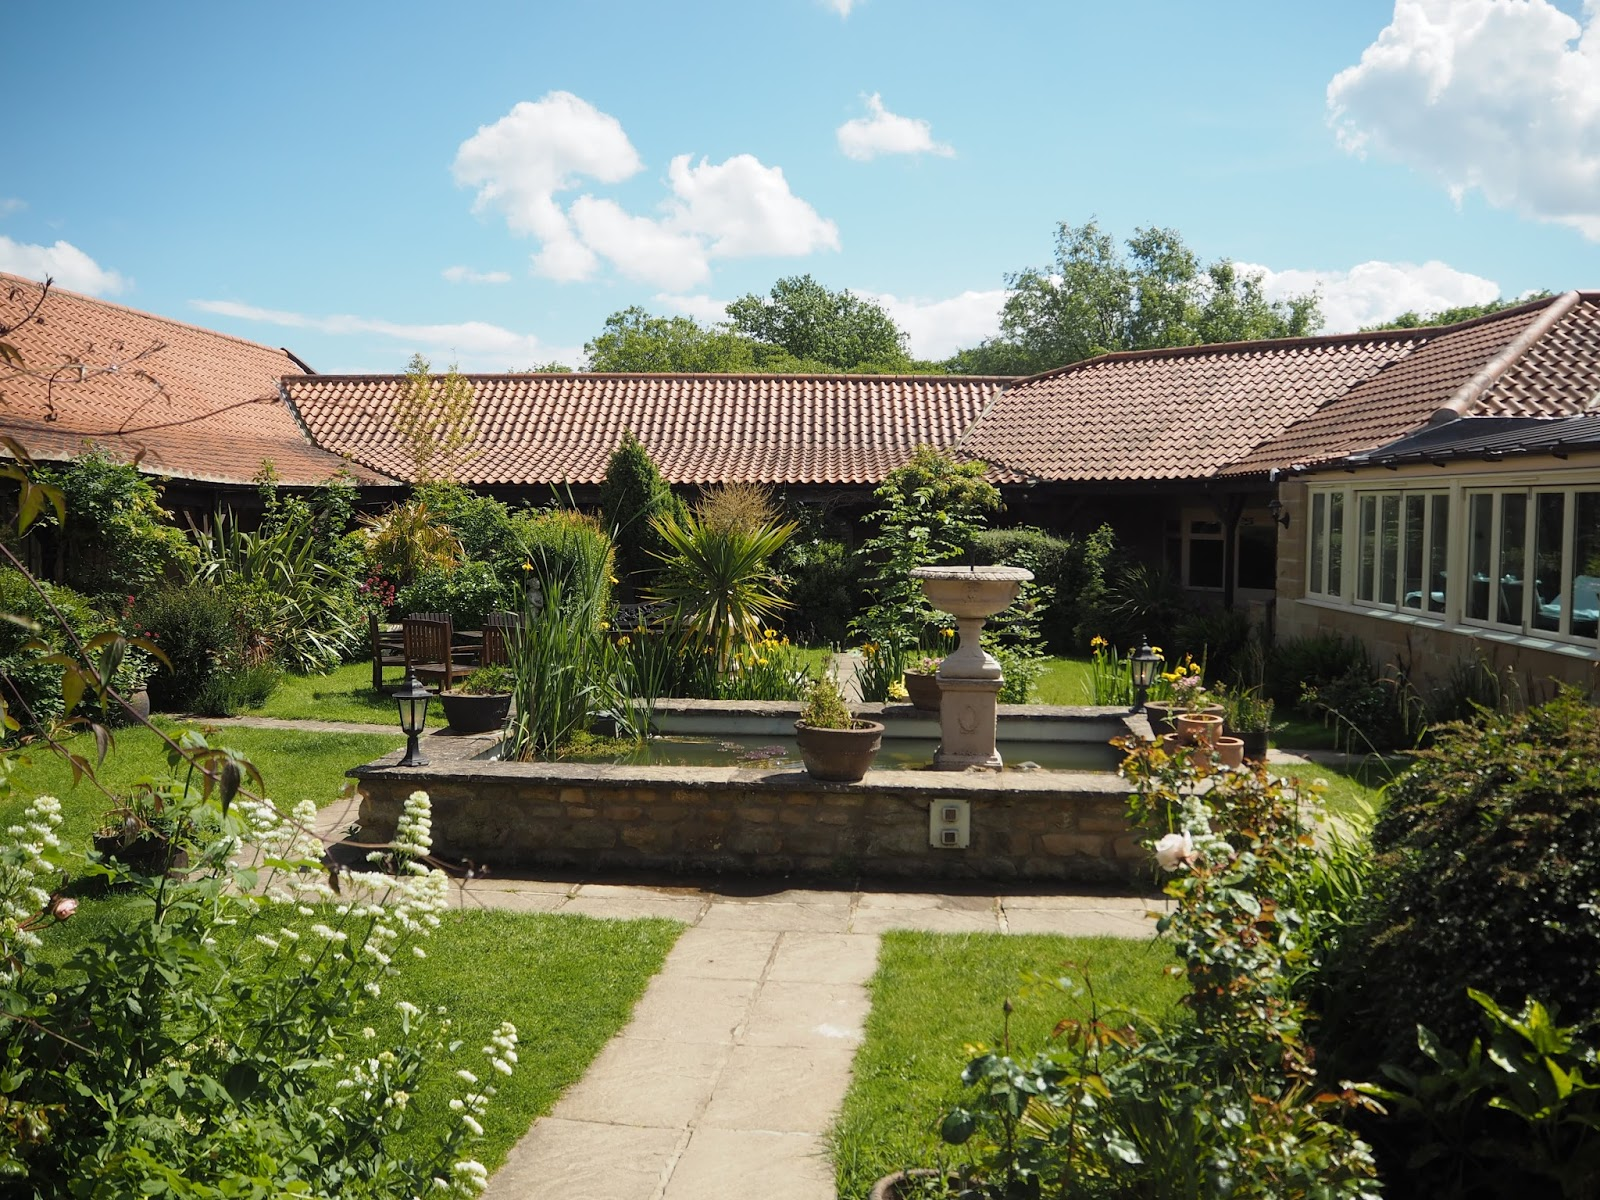 Courtyard gardens Ox Pasture Hall Country Hotel, Scarborough, Yorkshire, romantic hotel near beach in Scarborough